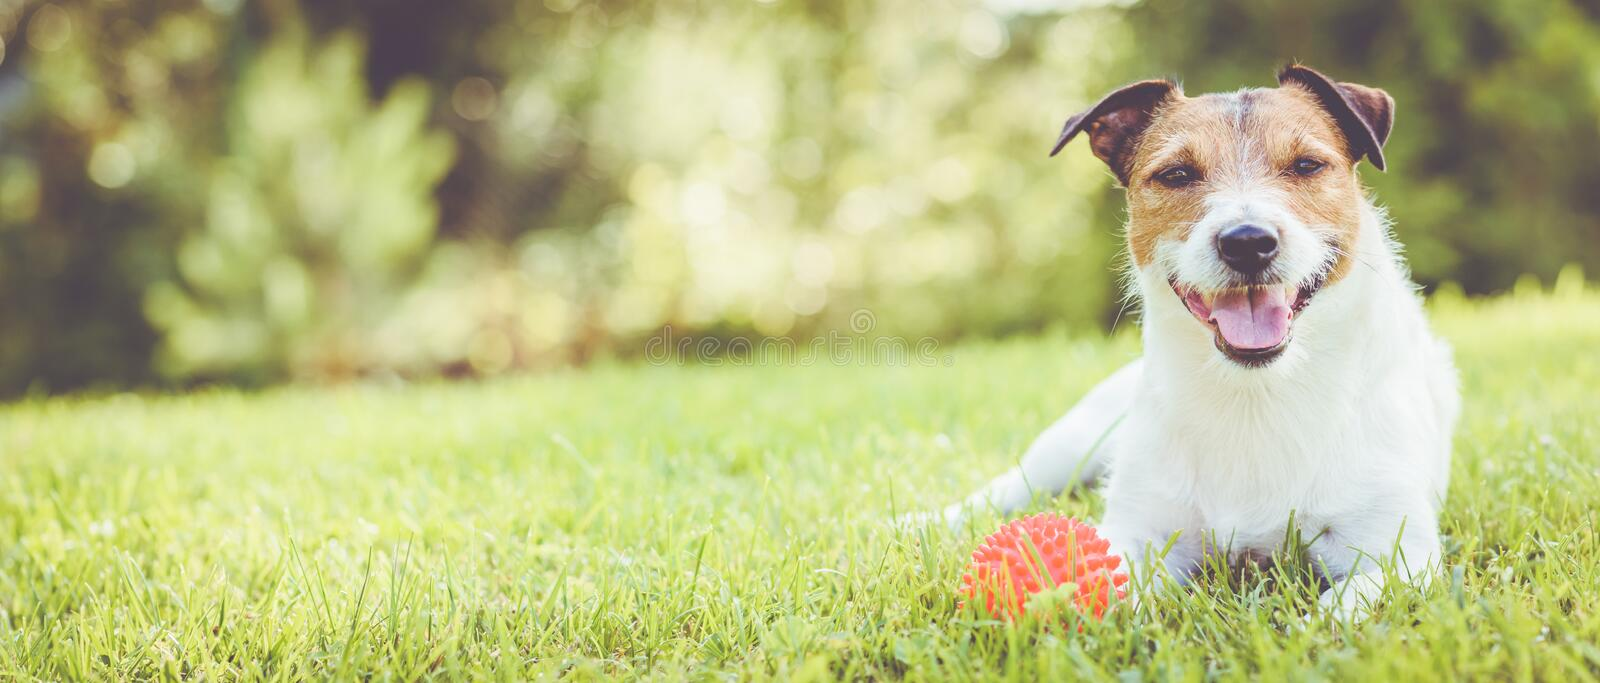 Pet dog lying on grass at sunny summer day panoramic crop royalty free stock photography